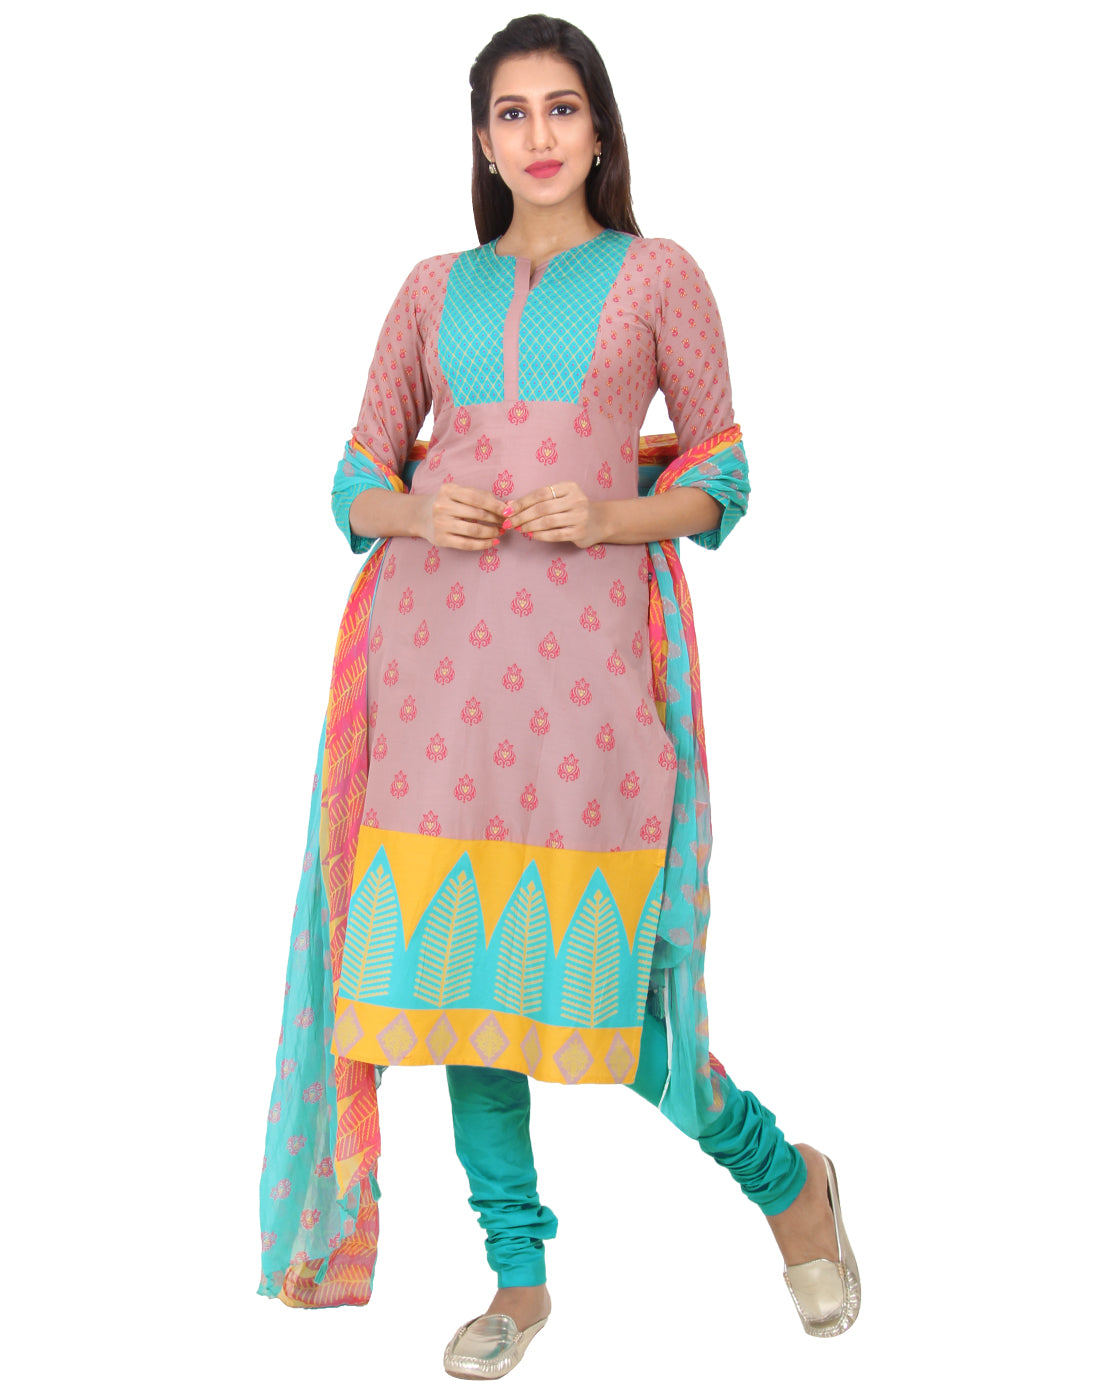 Cameo Rose Printed Cotton Salwar, Chudi and Chiffon Dupatta